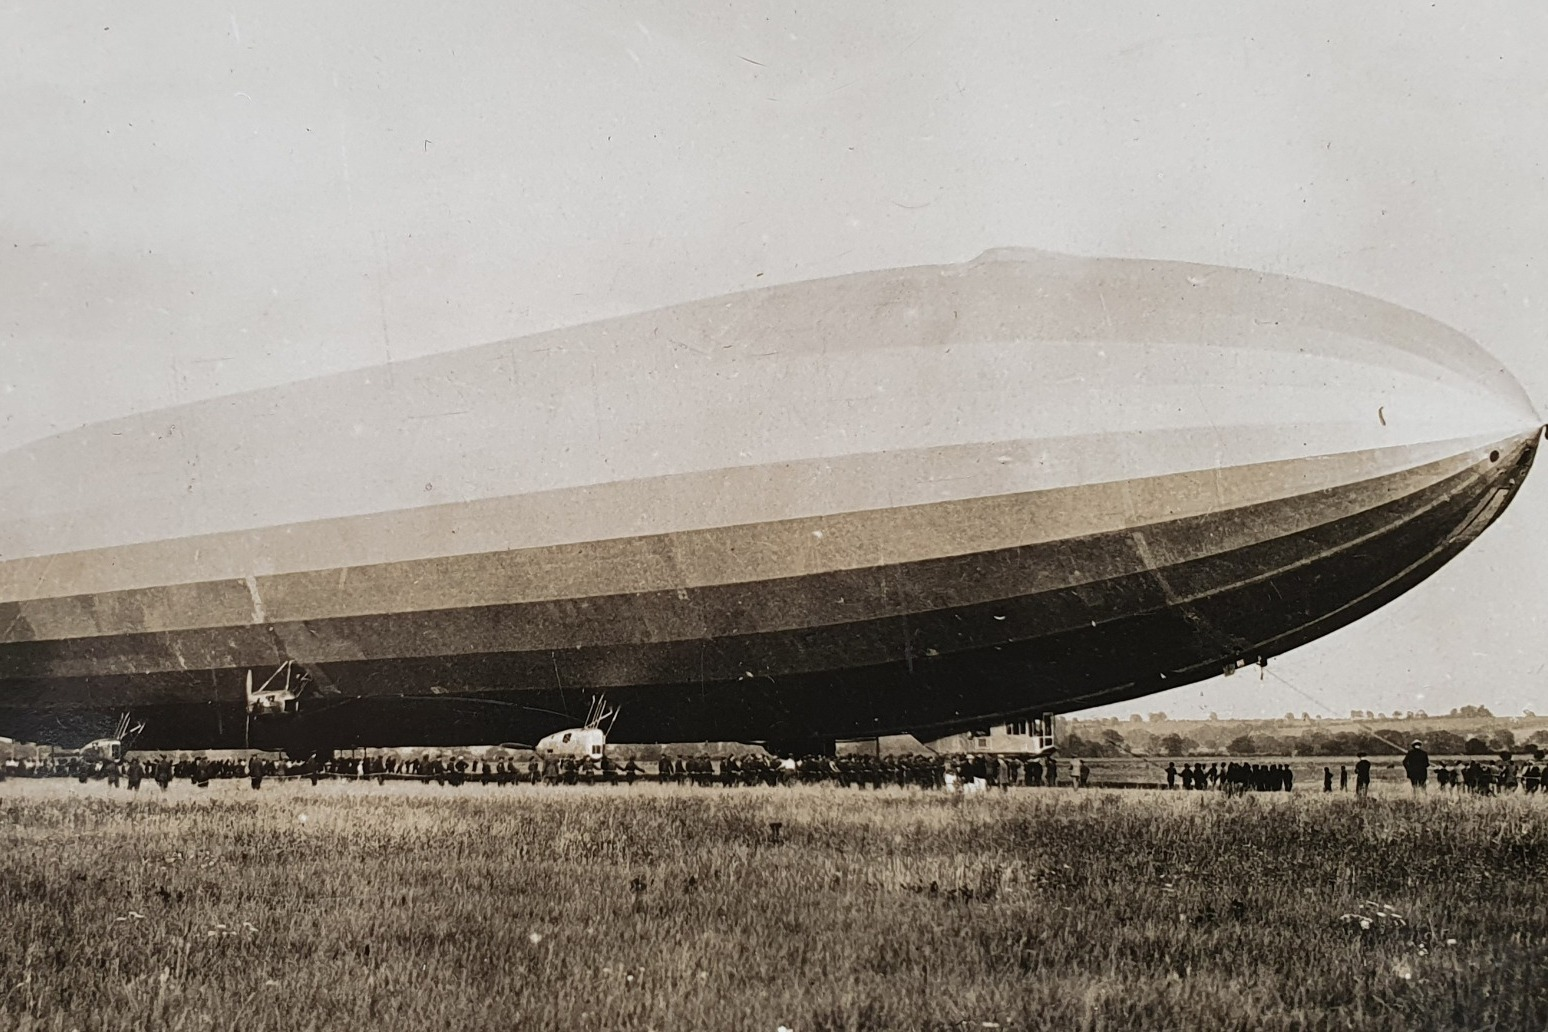 Families share memories of airship disaster to mark 100th anniversary